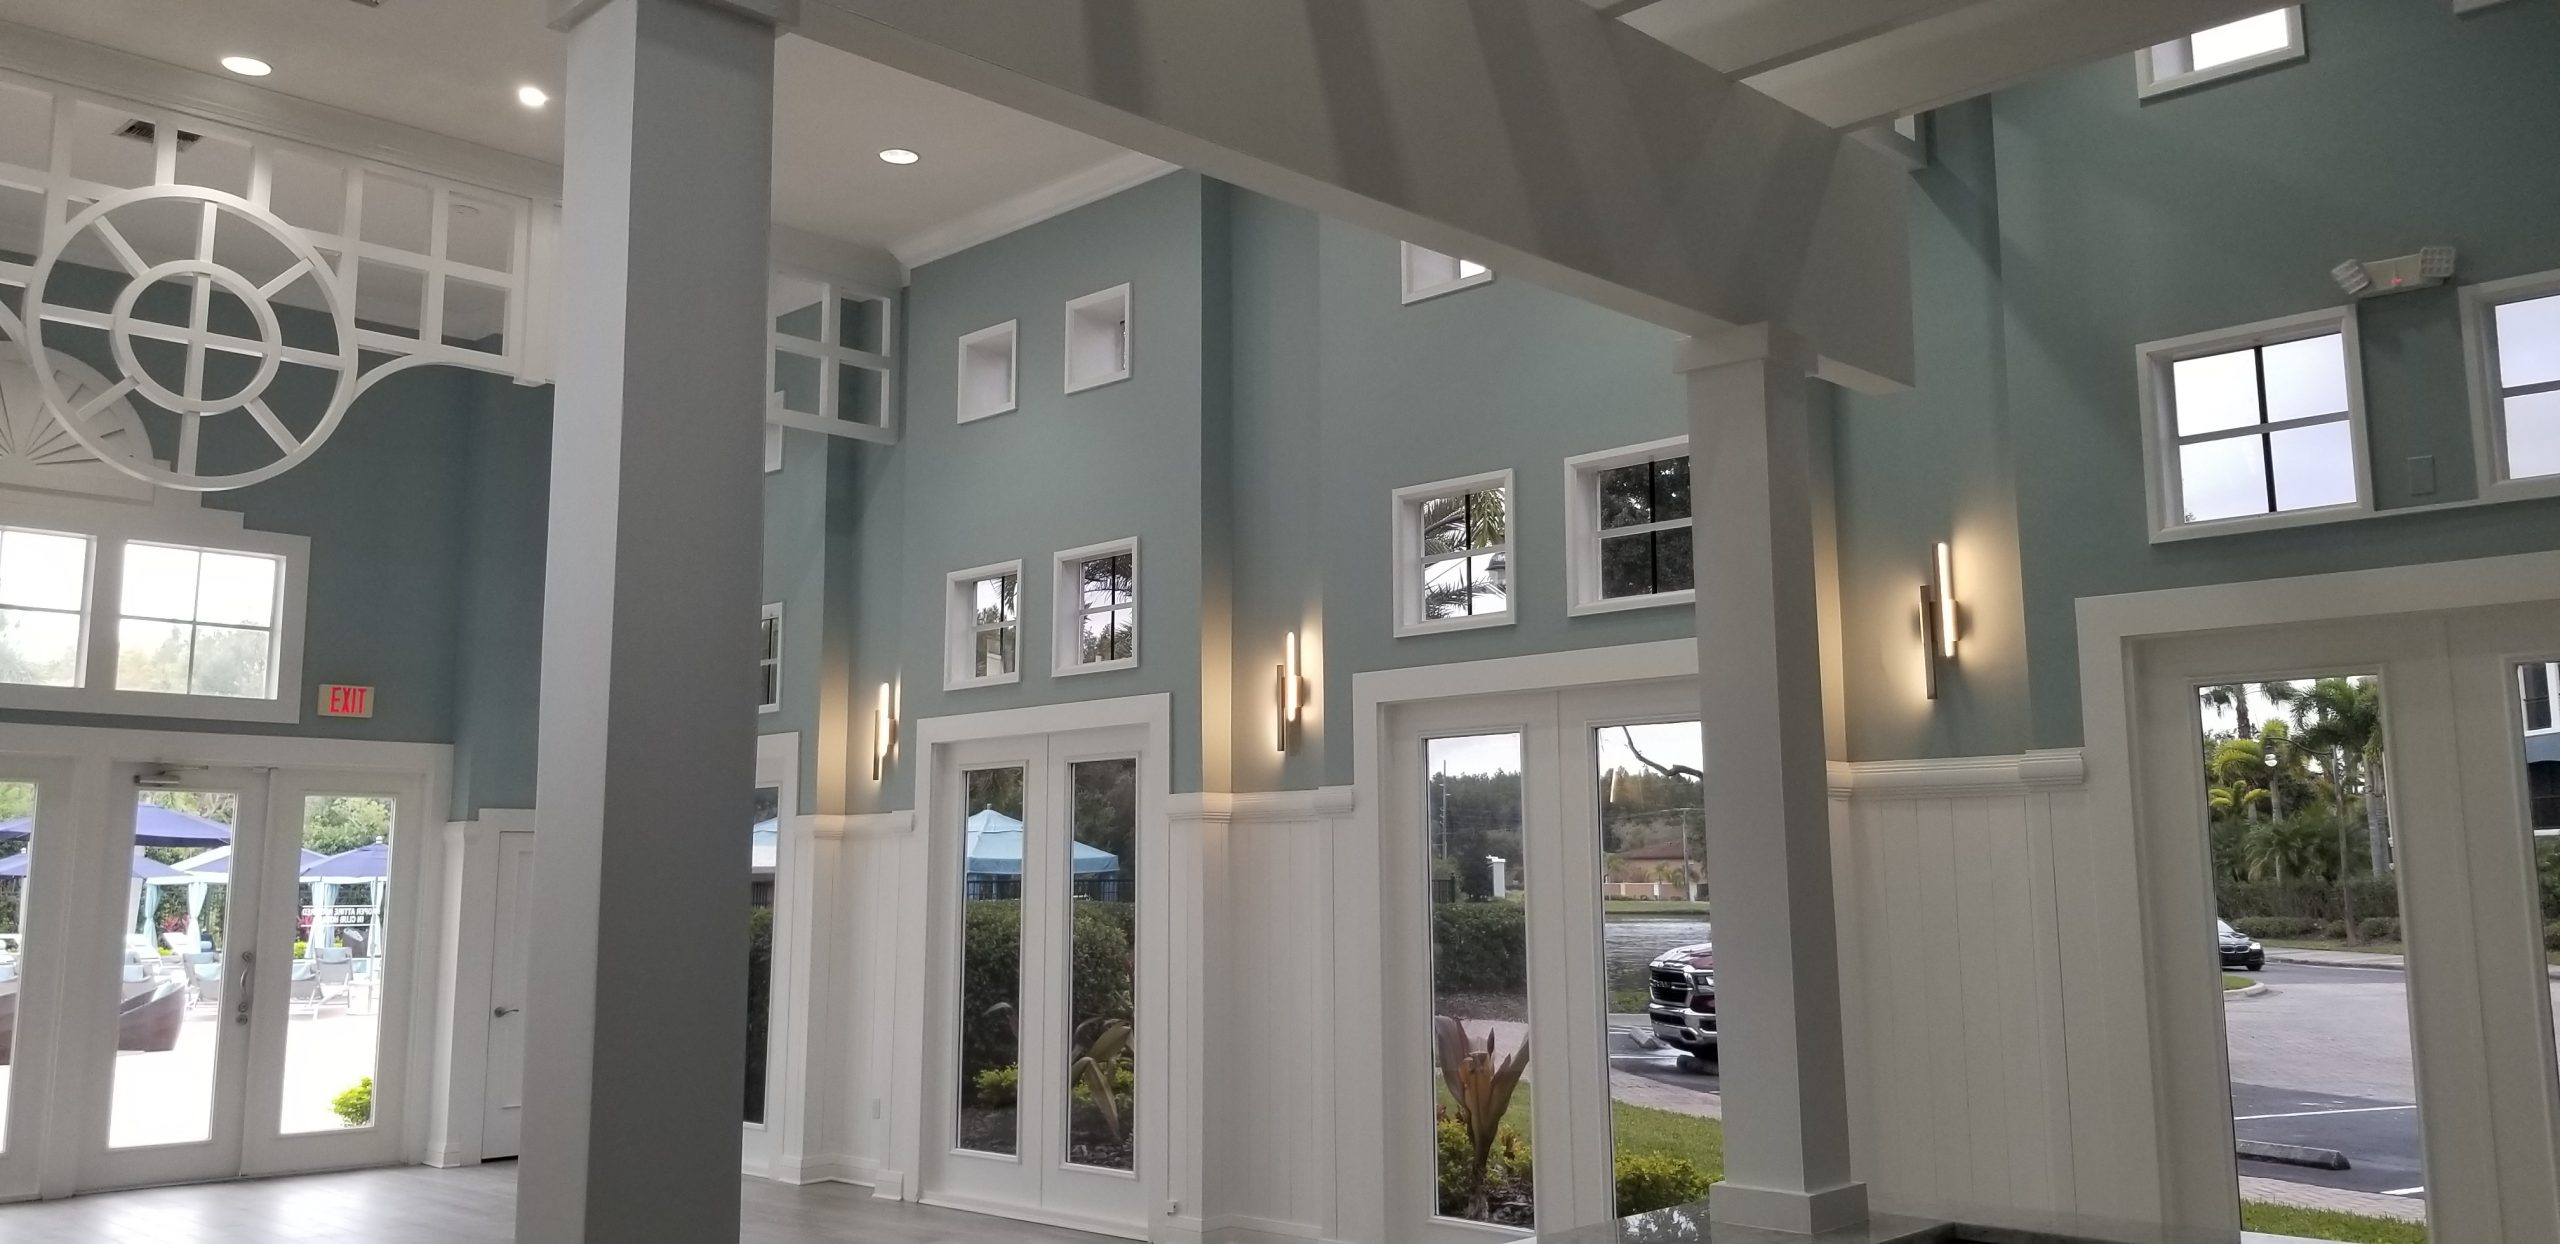 Arbors at Carrollwood Apartments - Lobby Design